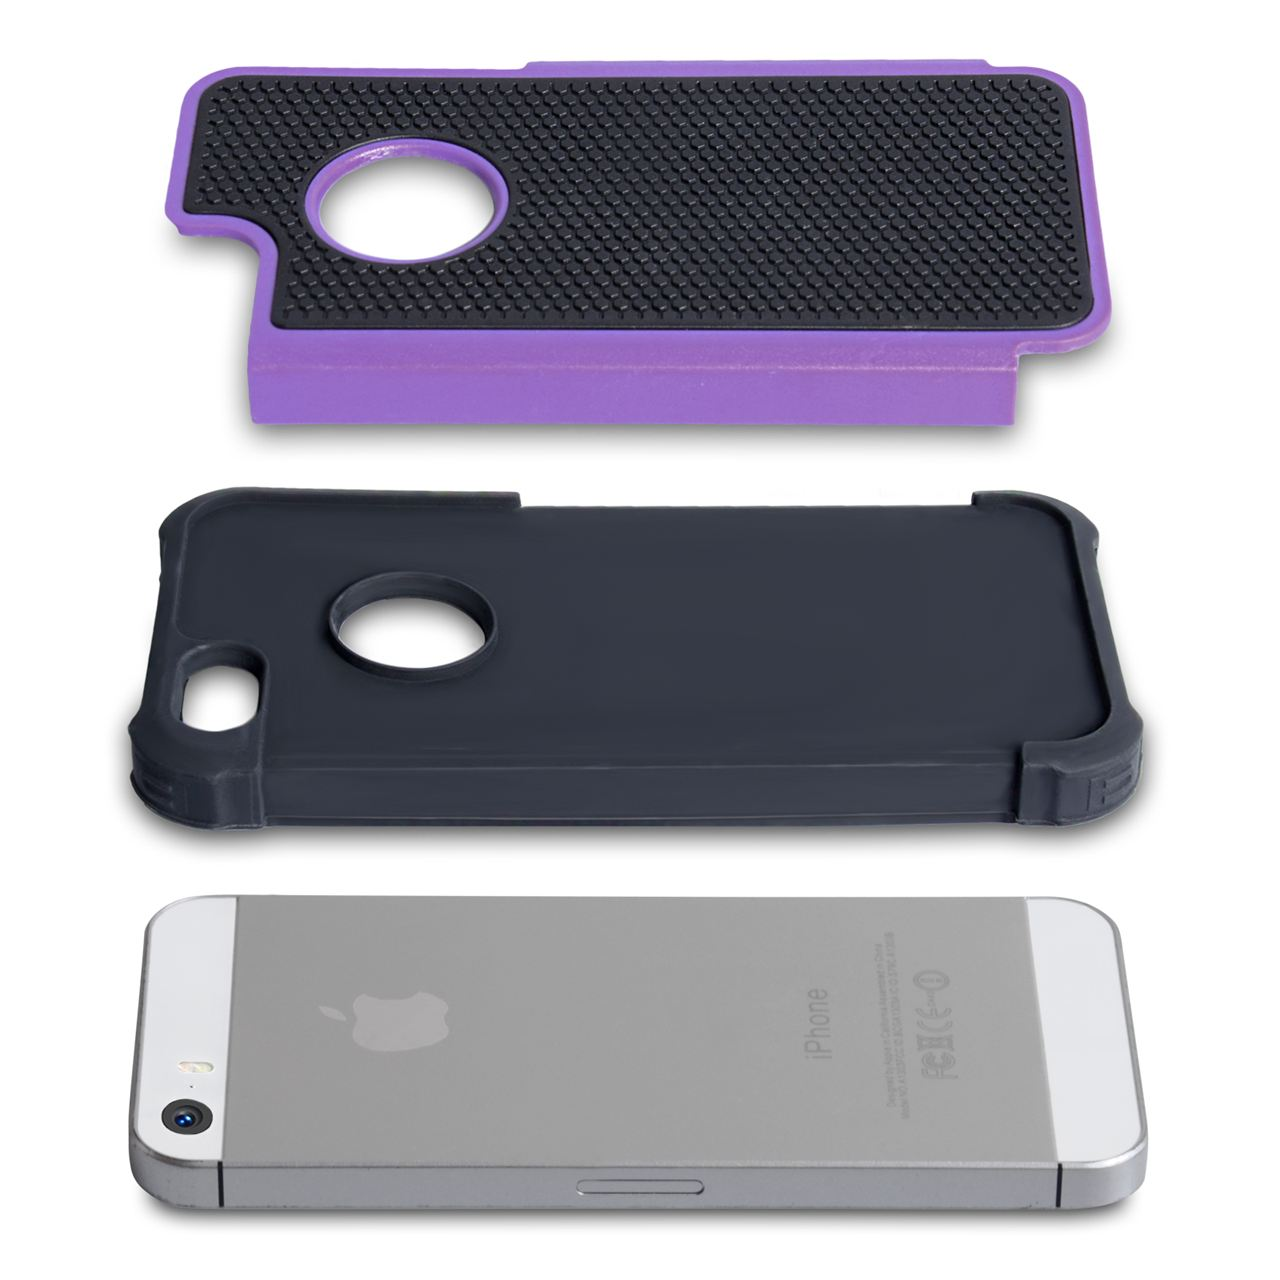 YouSave Accessories iPhone 5 / 5S Grip Combo Case - Purple